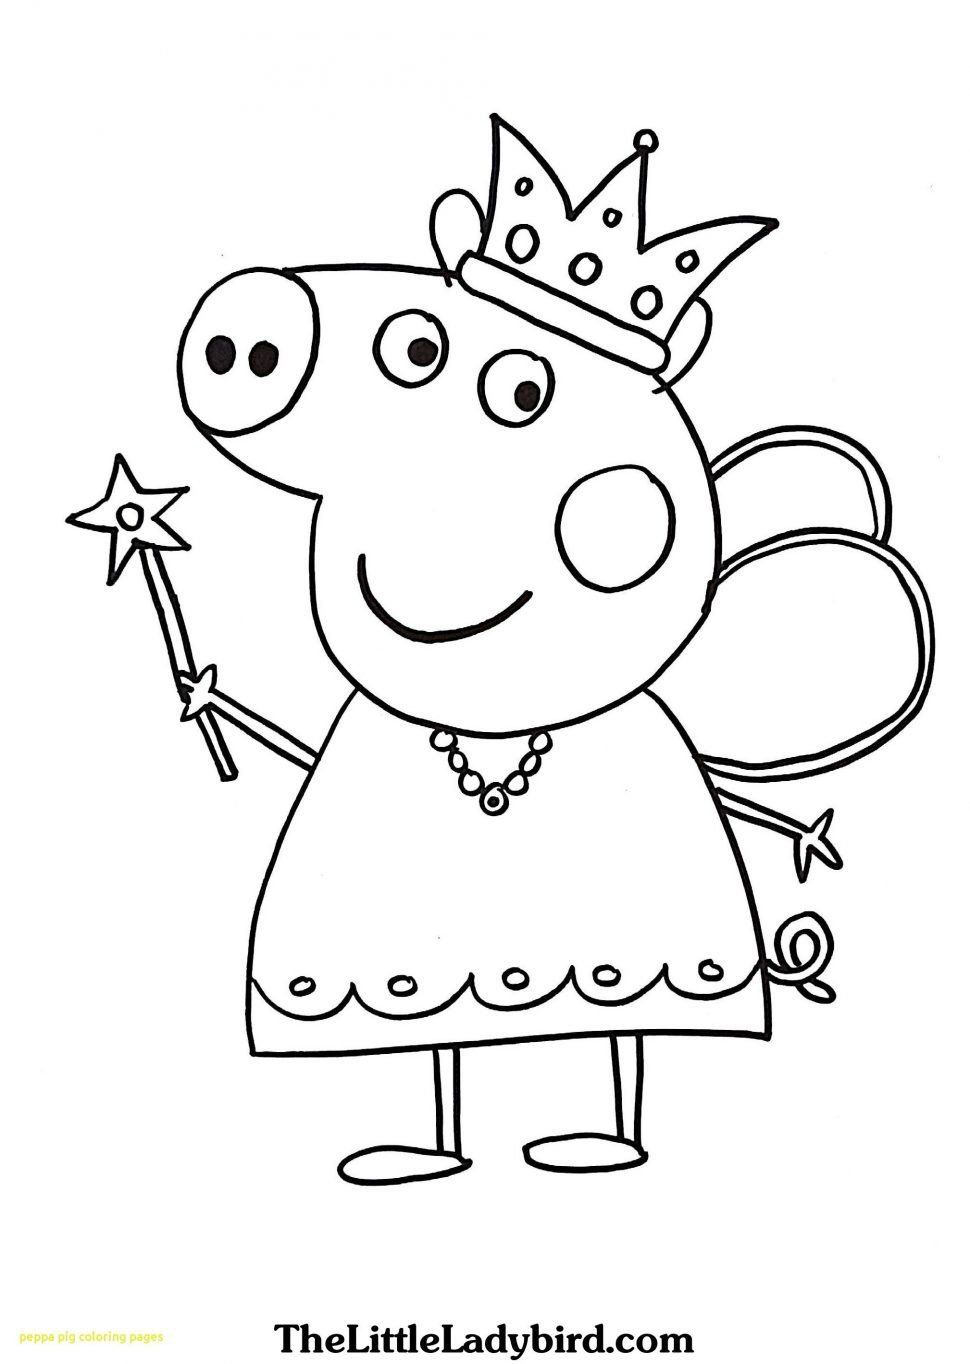 Coloring Picture Az Coloring Pages Peppa Pig Coloring Pages Peppa Pig Colouring Peppa Pig Drawing